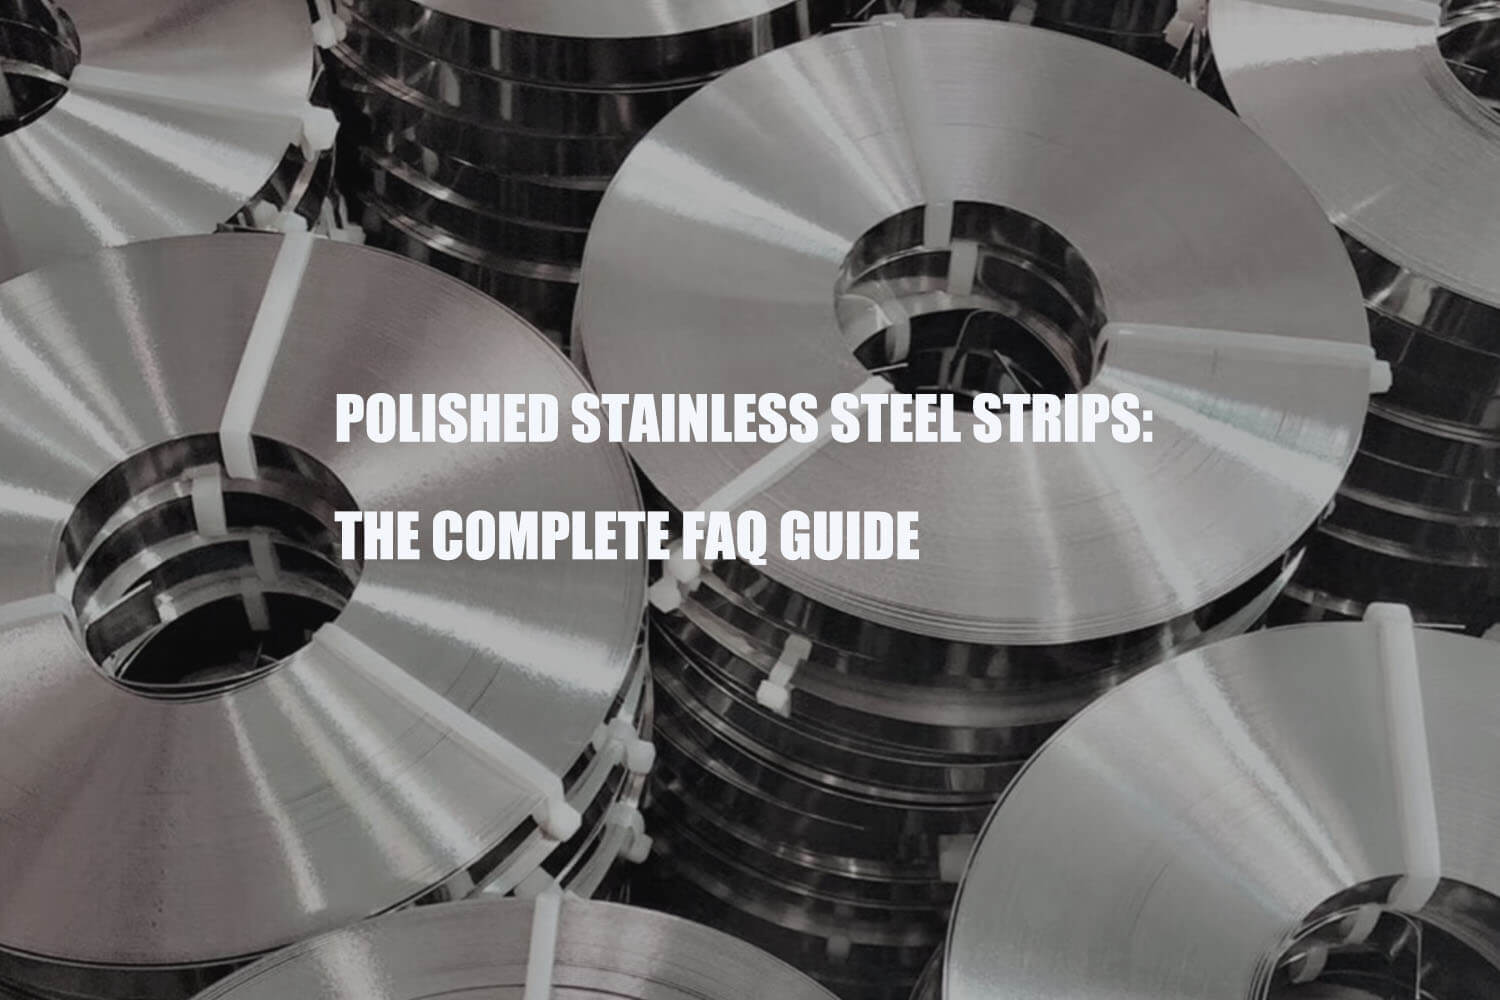 polished-stainless-steel-strips